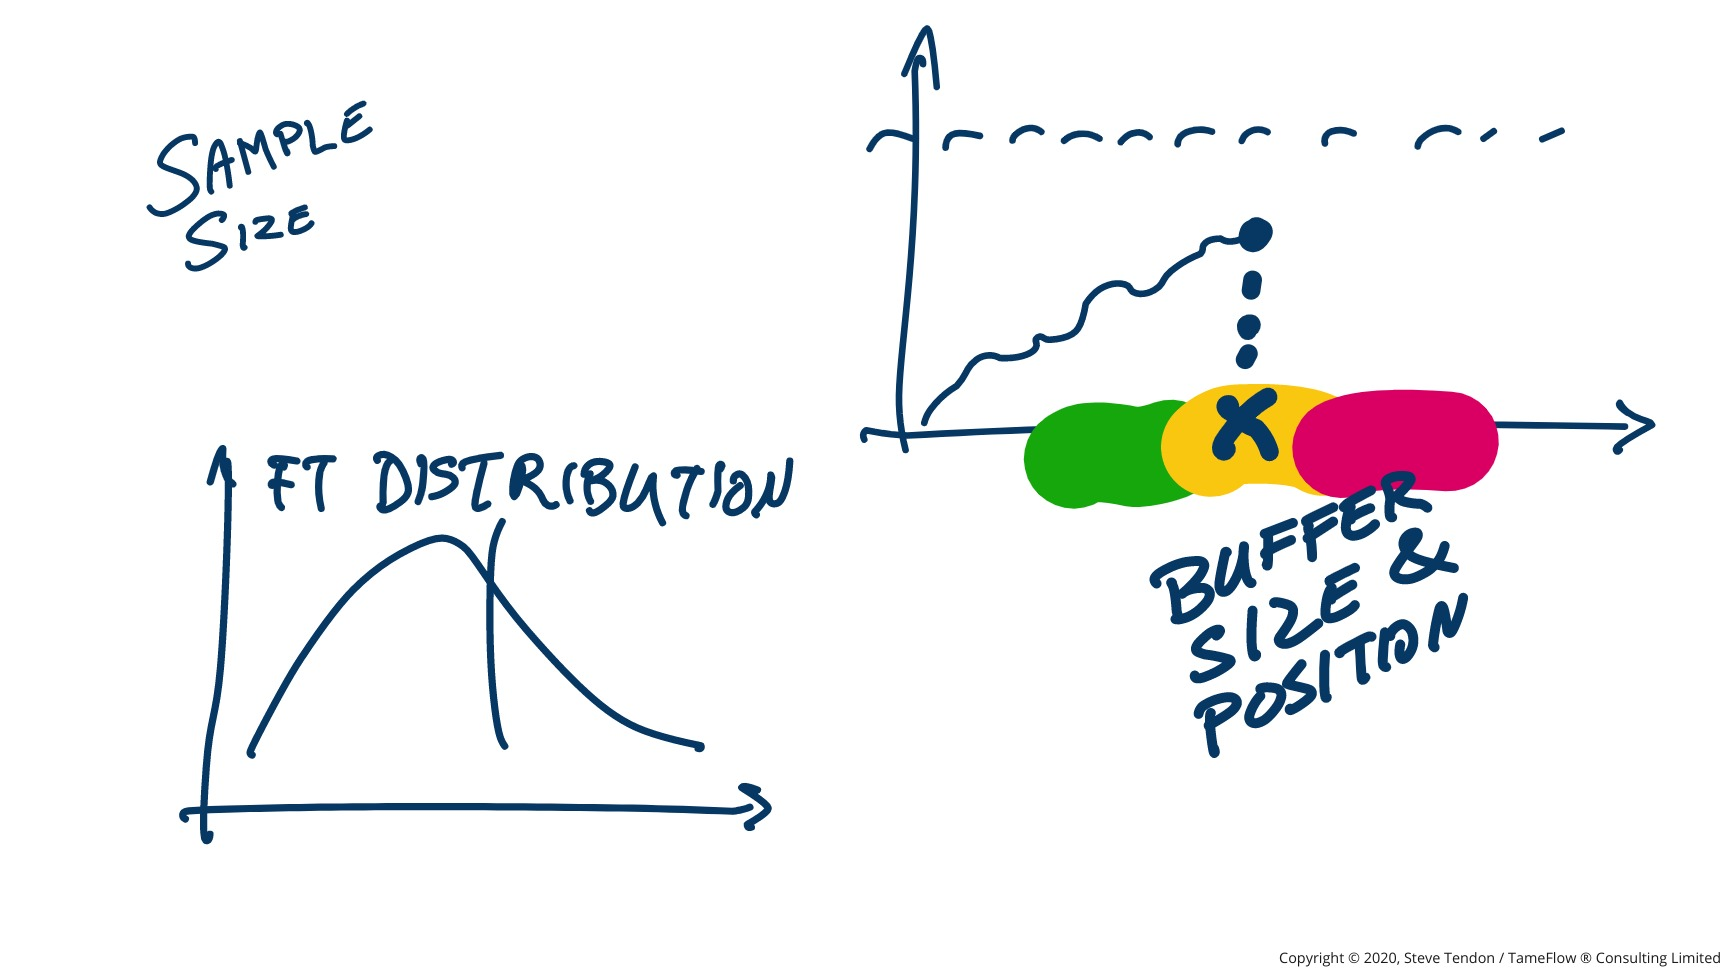 Relationship between Flow Time Distribution and Buffer size and position